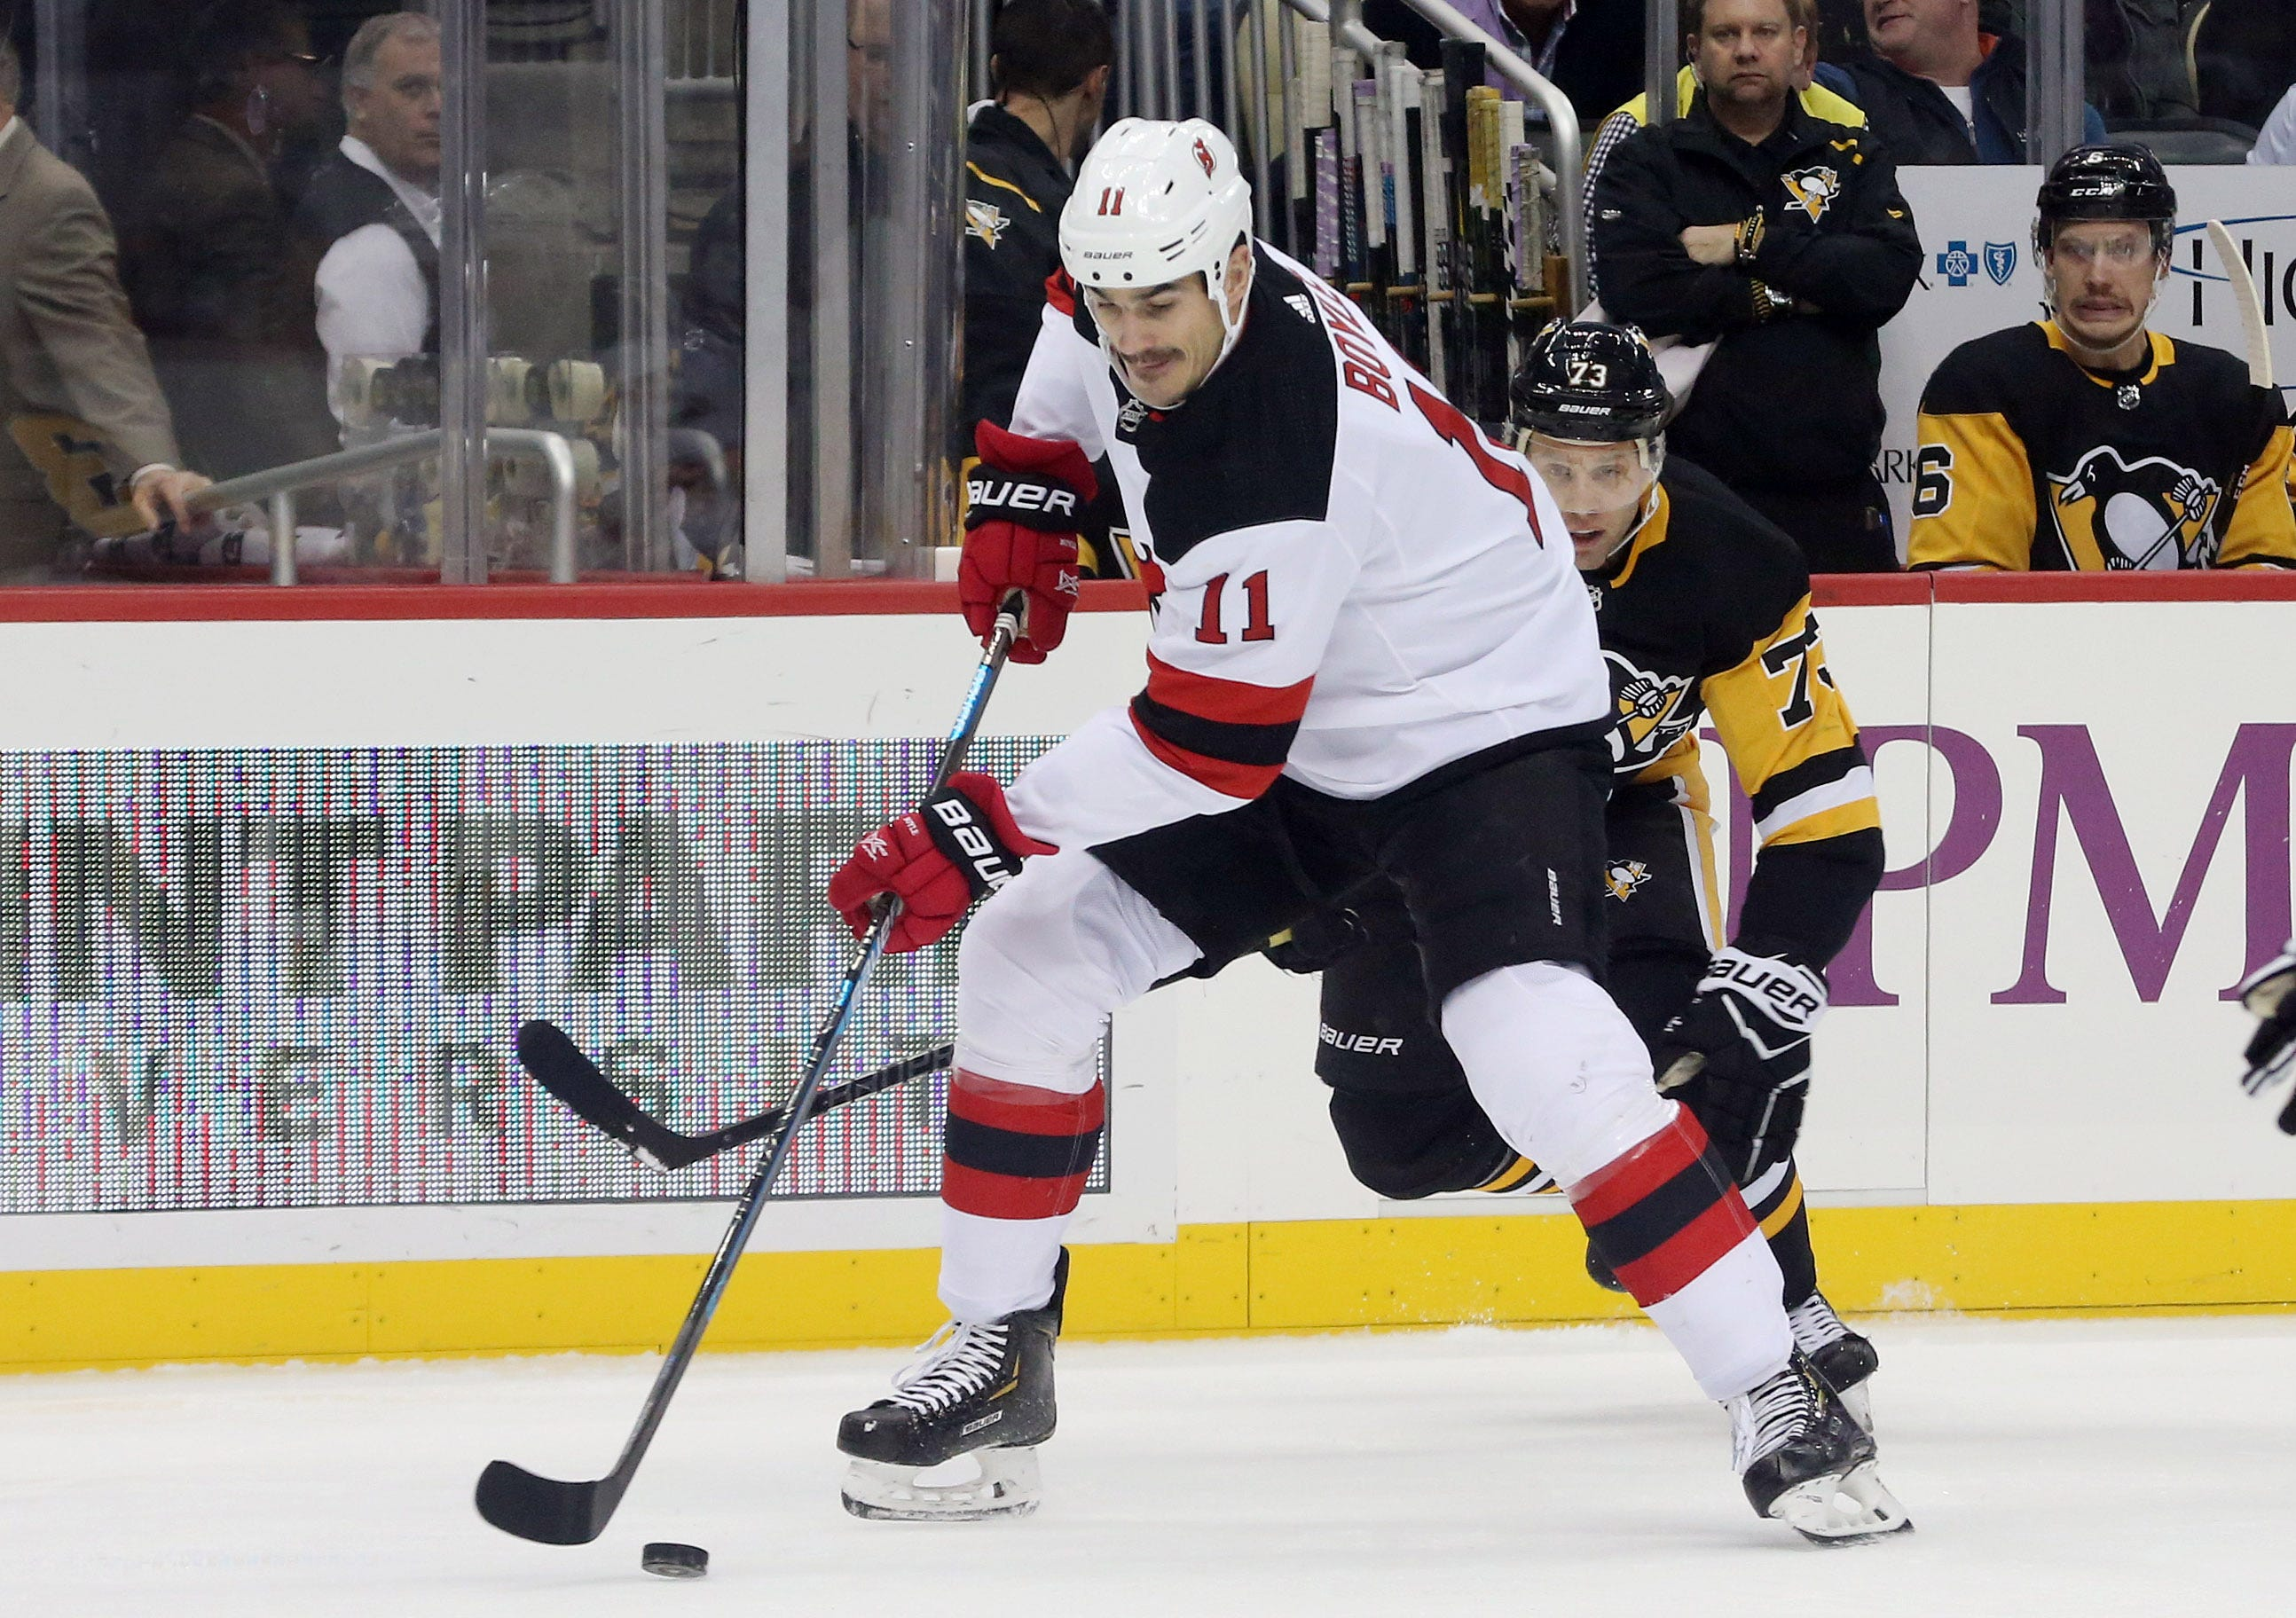 Brian Boyle helps NJ Devils snap slump with hat trick on Hockey Fights  Cancer Night Northjersey - 21 52 PM ET November 05 9852a2eef